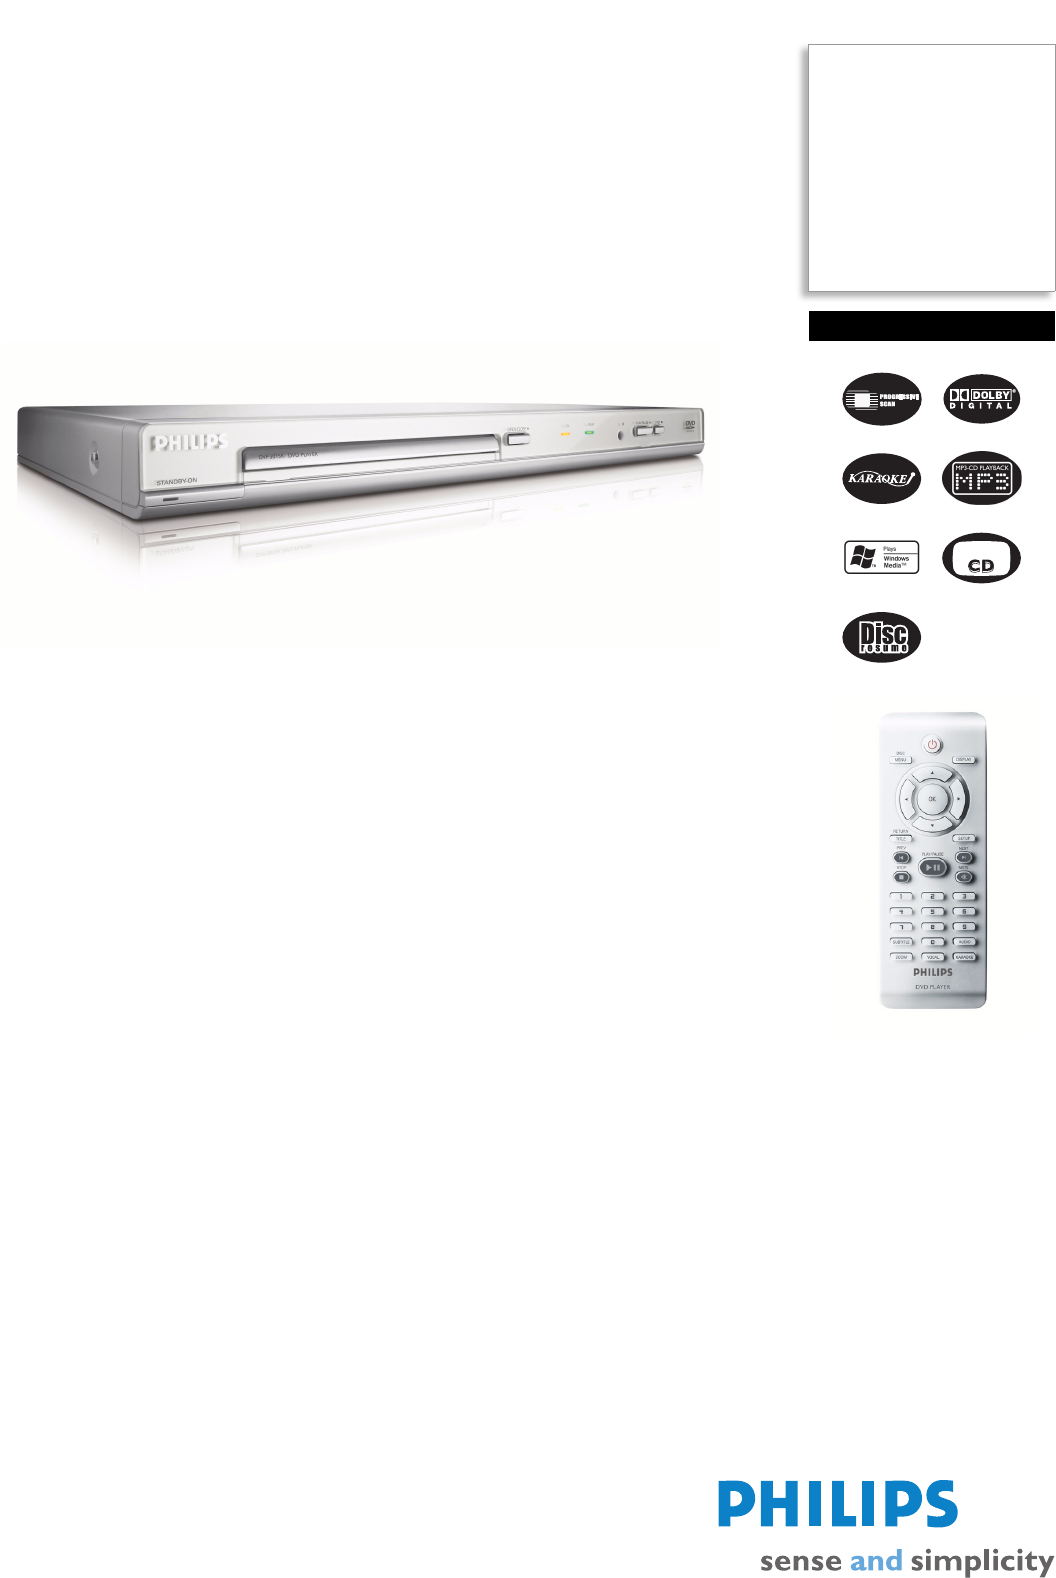 philips dvd player dvp5990 manual